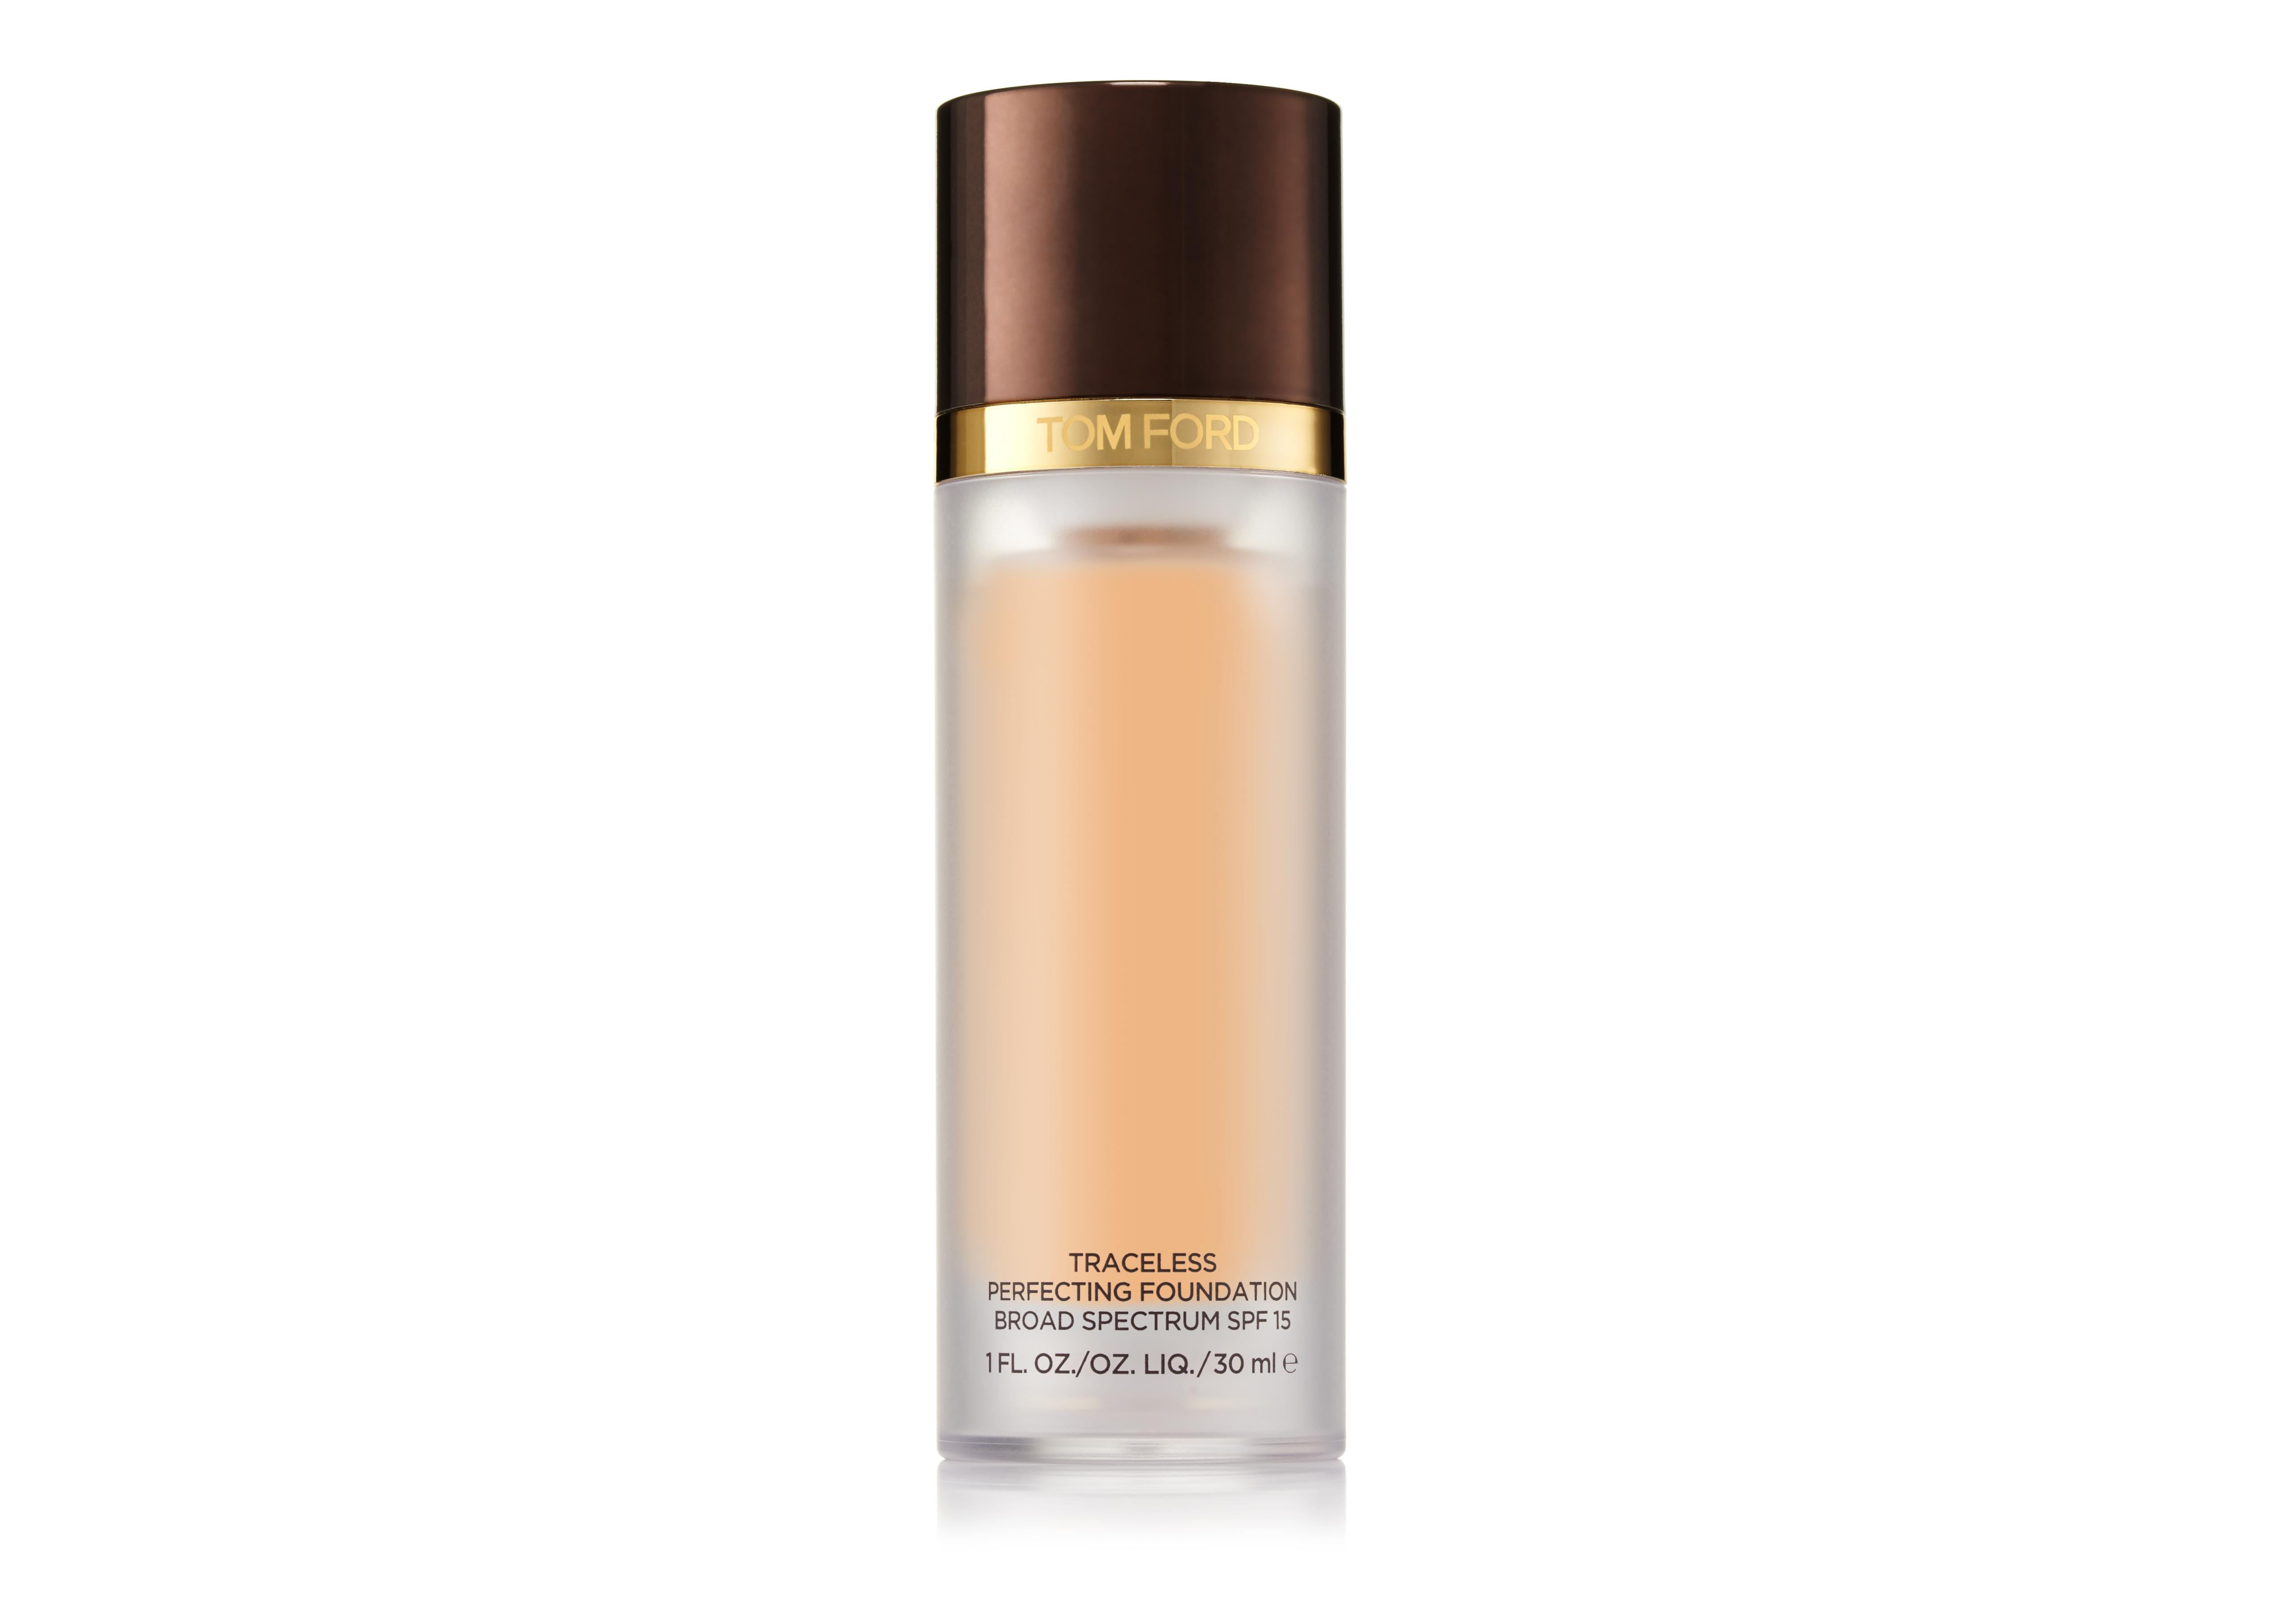 TRACELESS PERFECTING FOUNDATION SPF15 A thumbnail